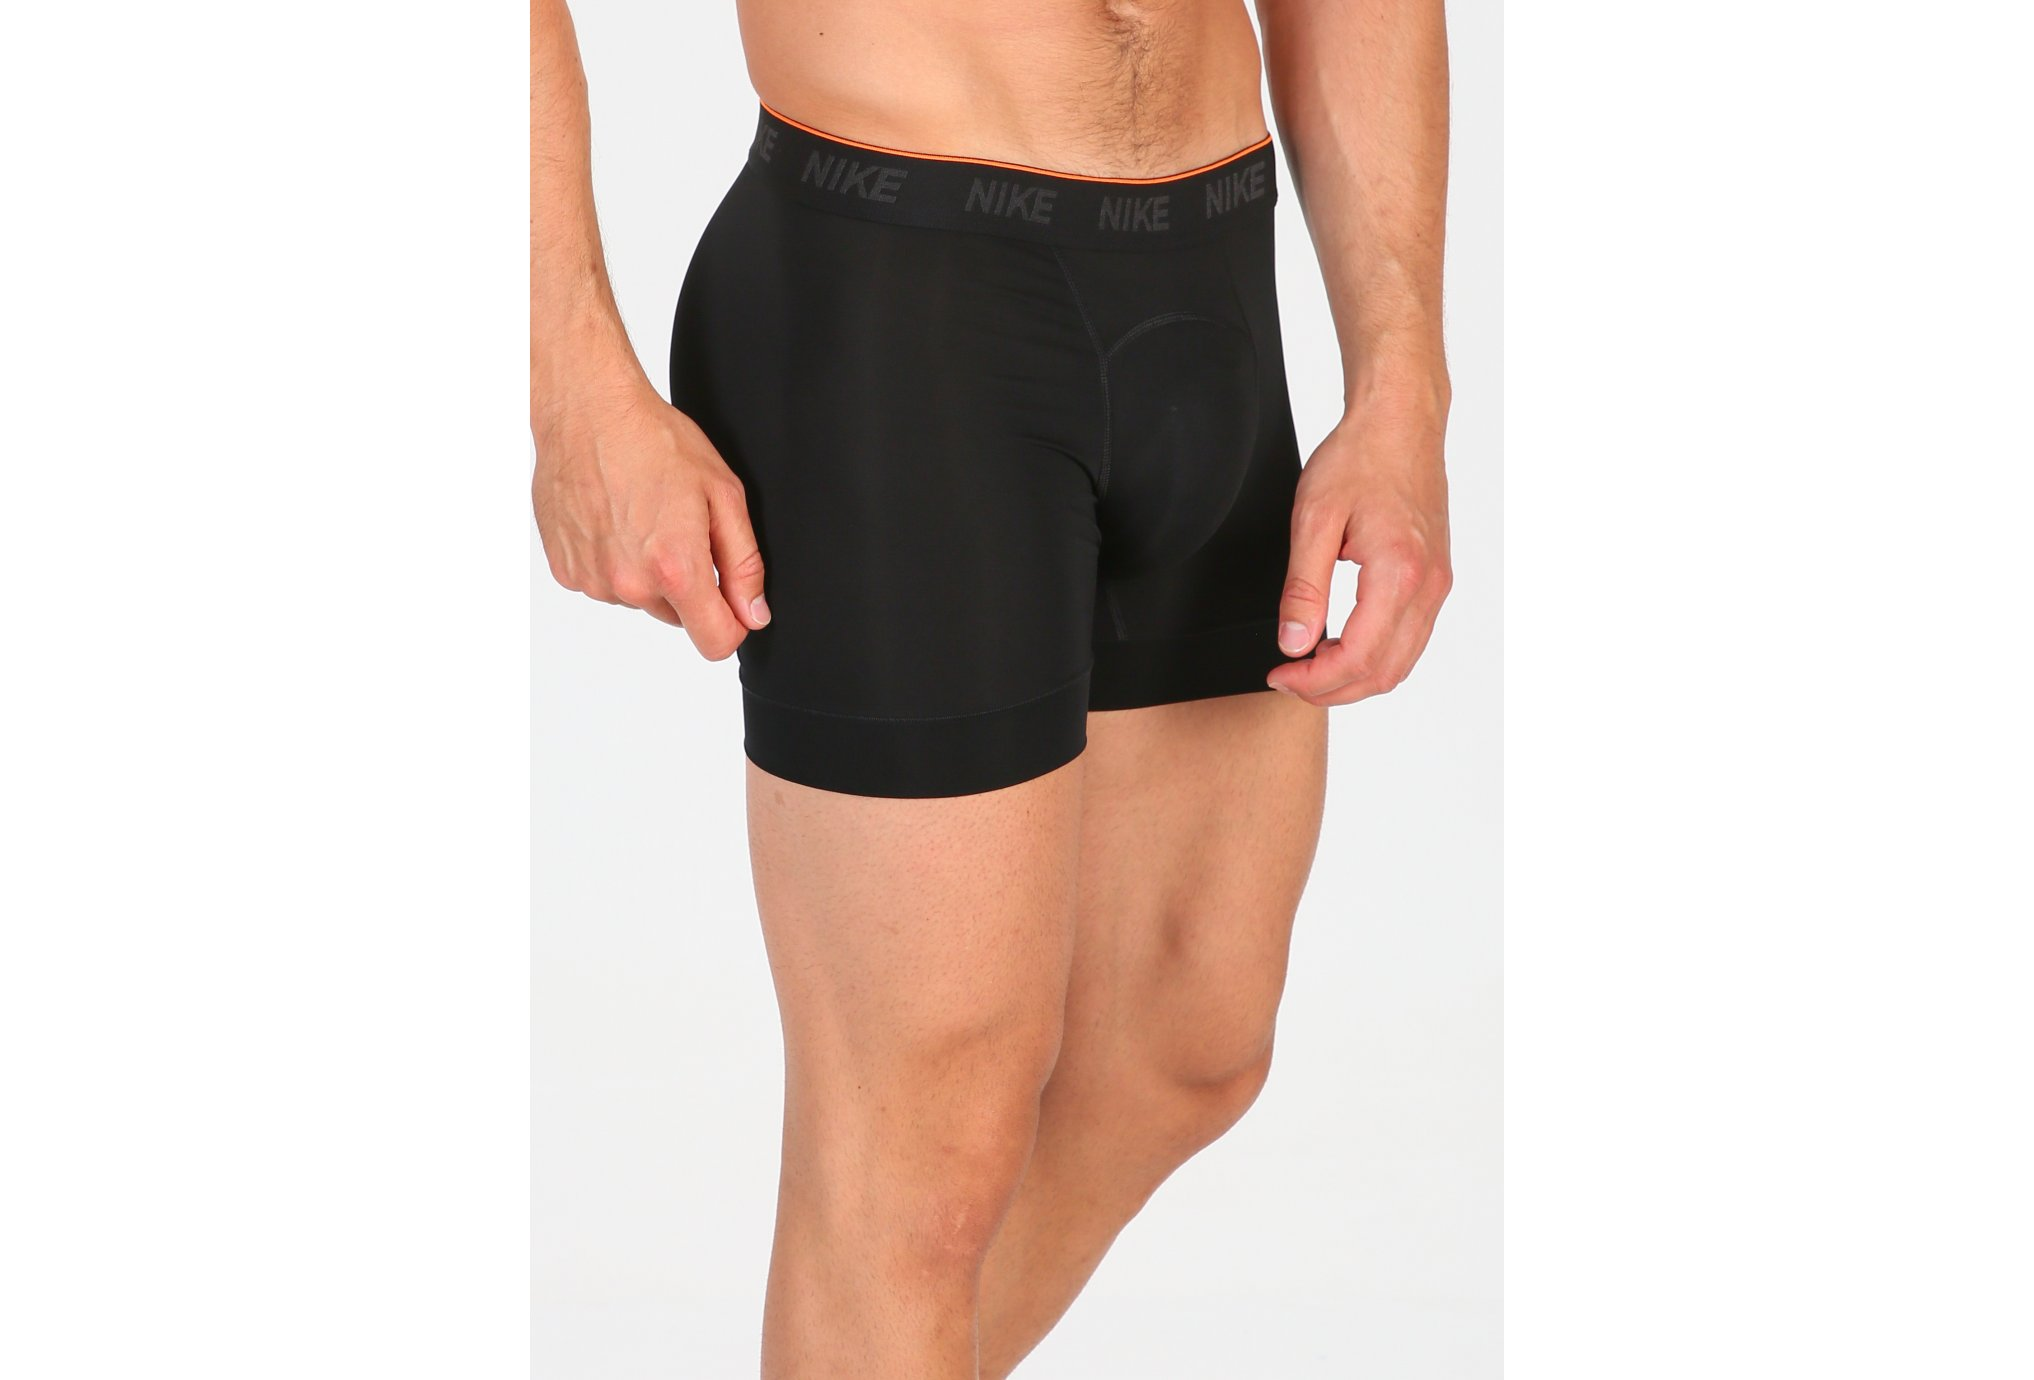 Nike Lot de 2 boxers Brief M vêtement running homme